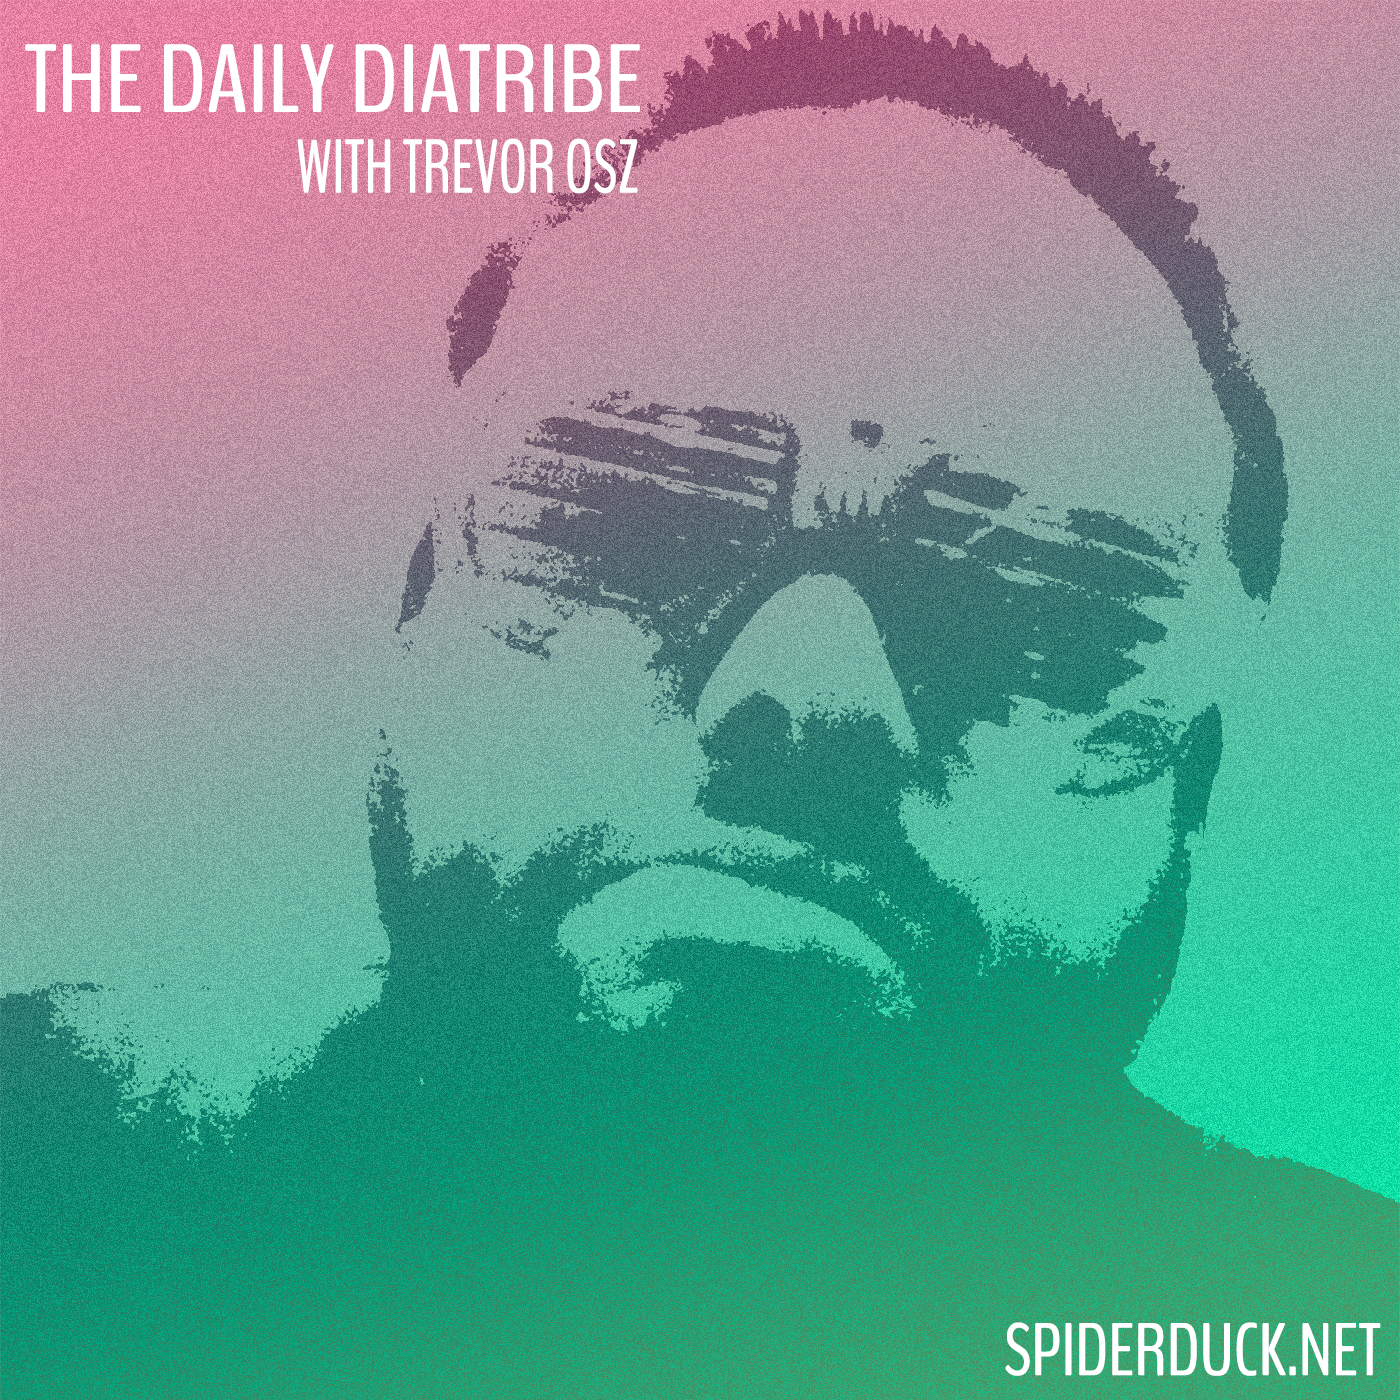 Daily Diatribe - Spiderduck